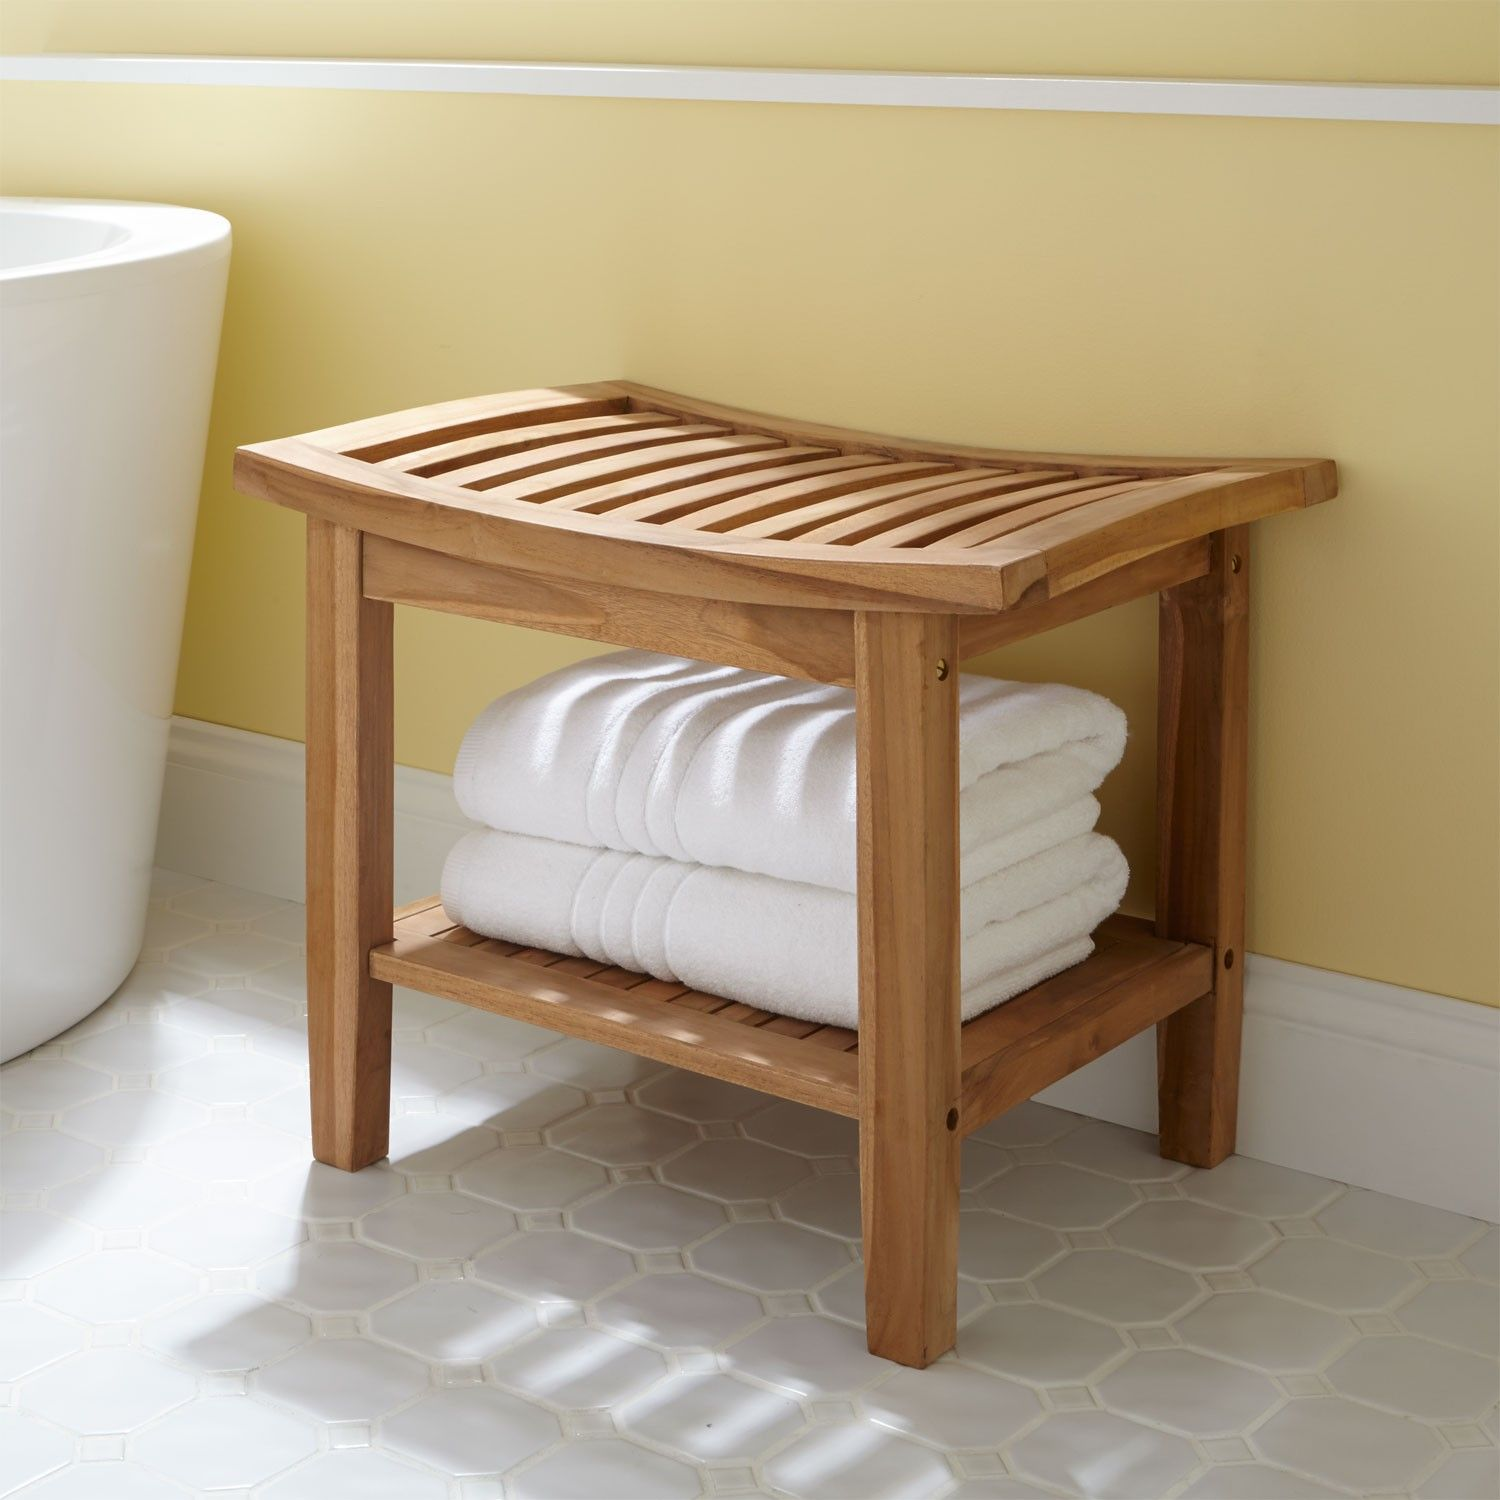 Elok teak shower seat shower seat and teak Bath bench